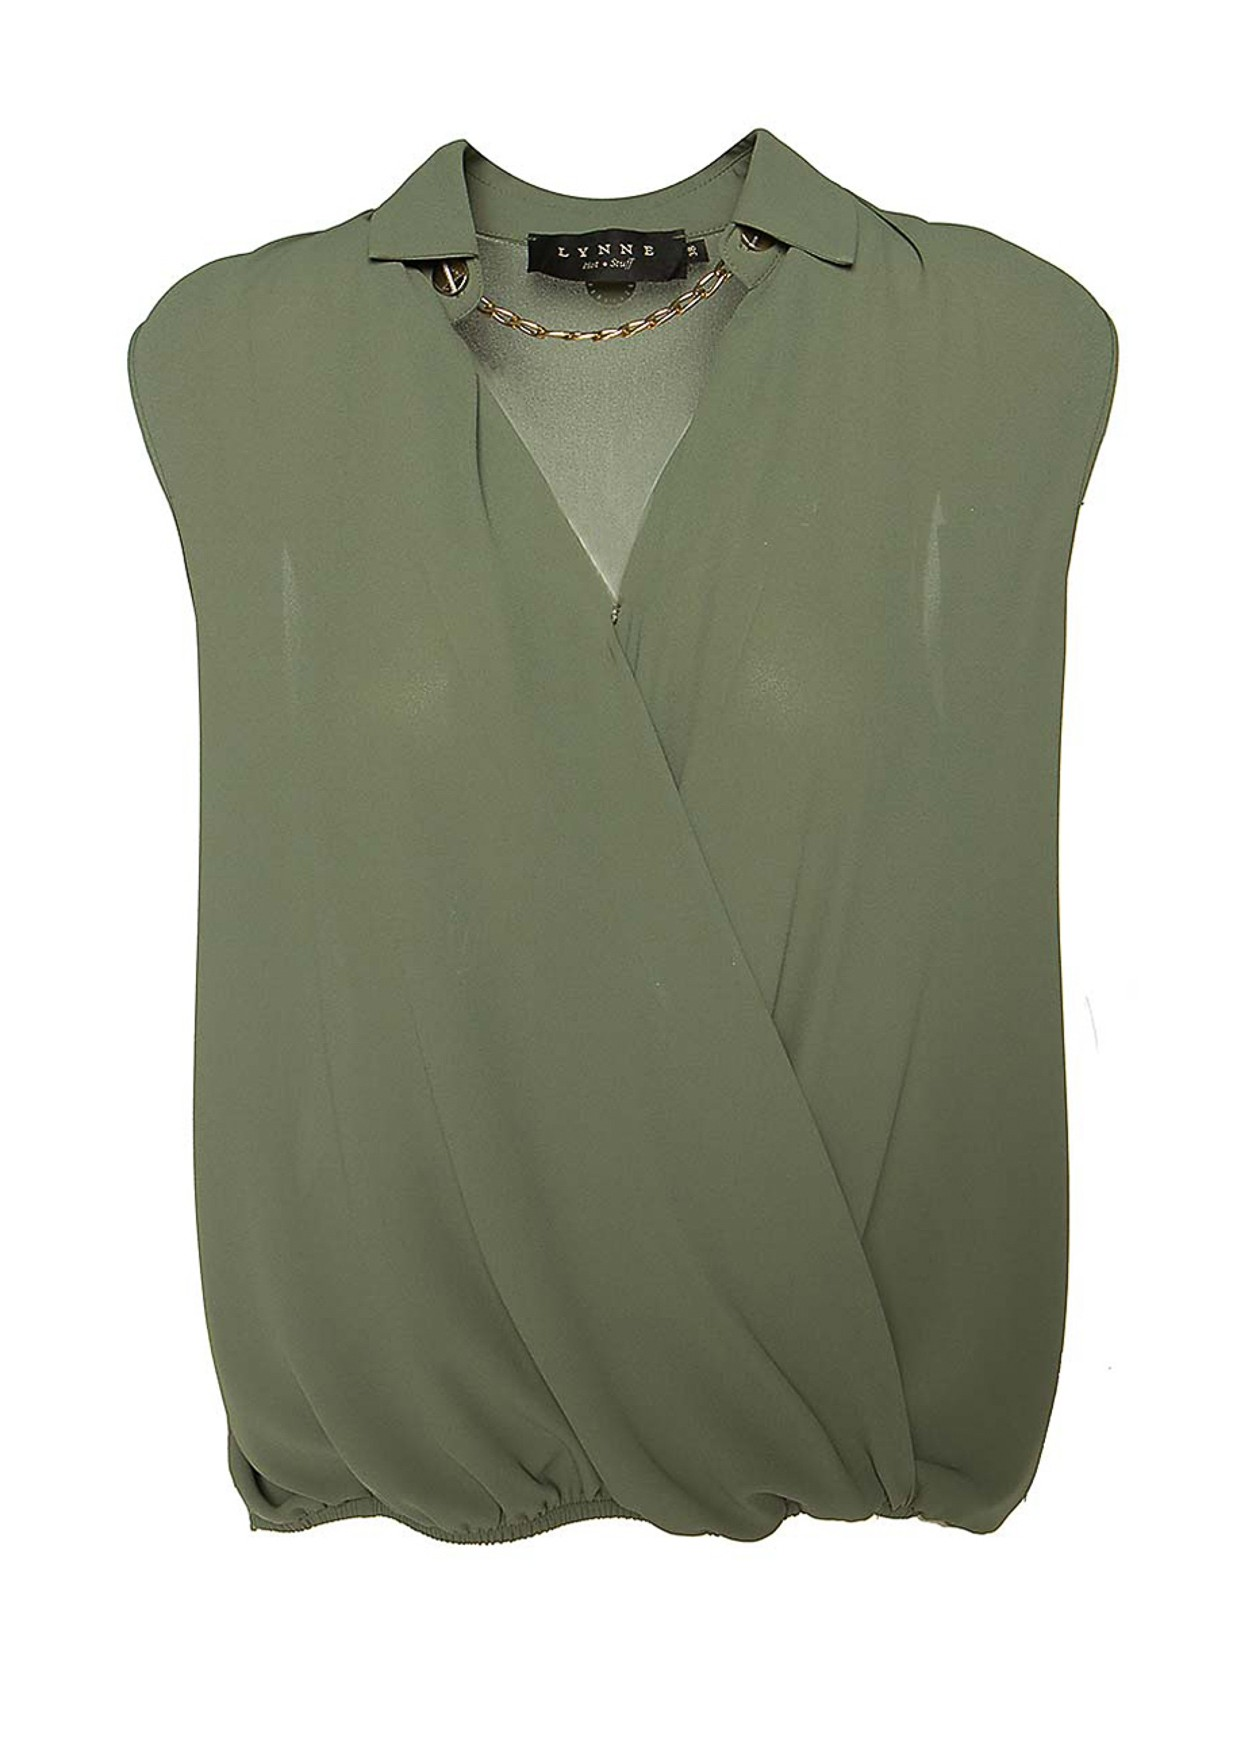 Blouse with chain detail